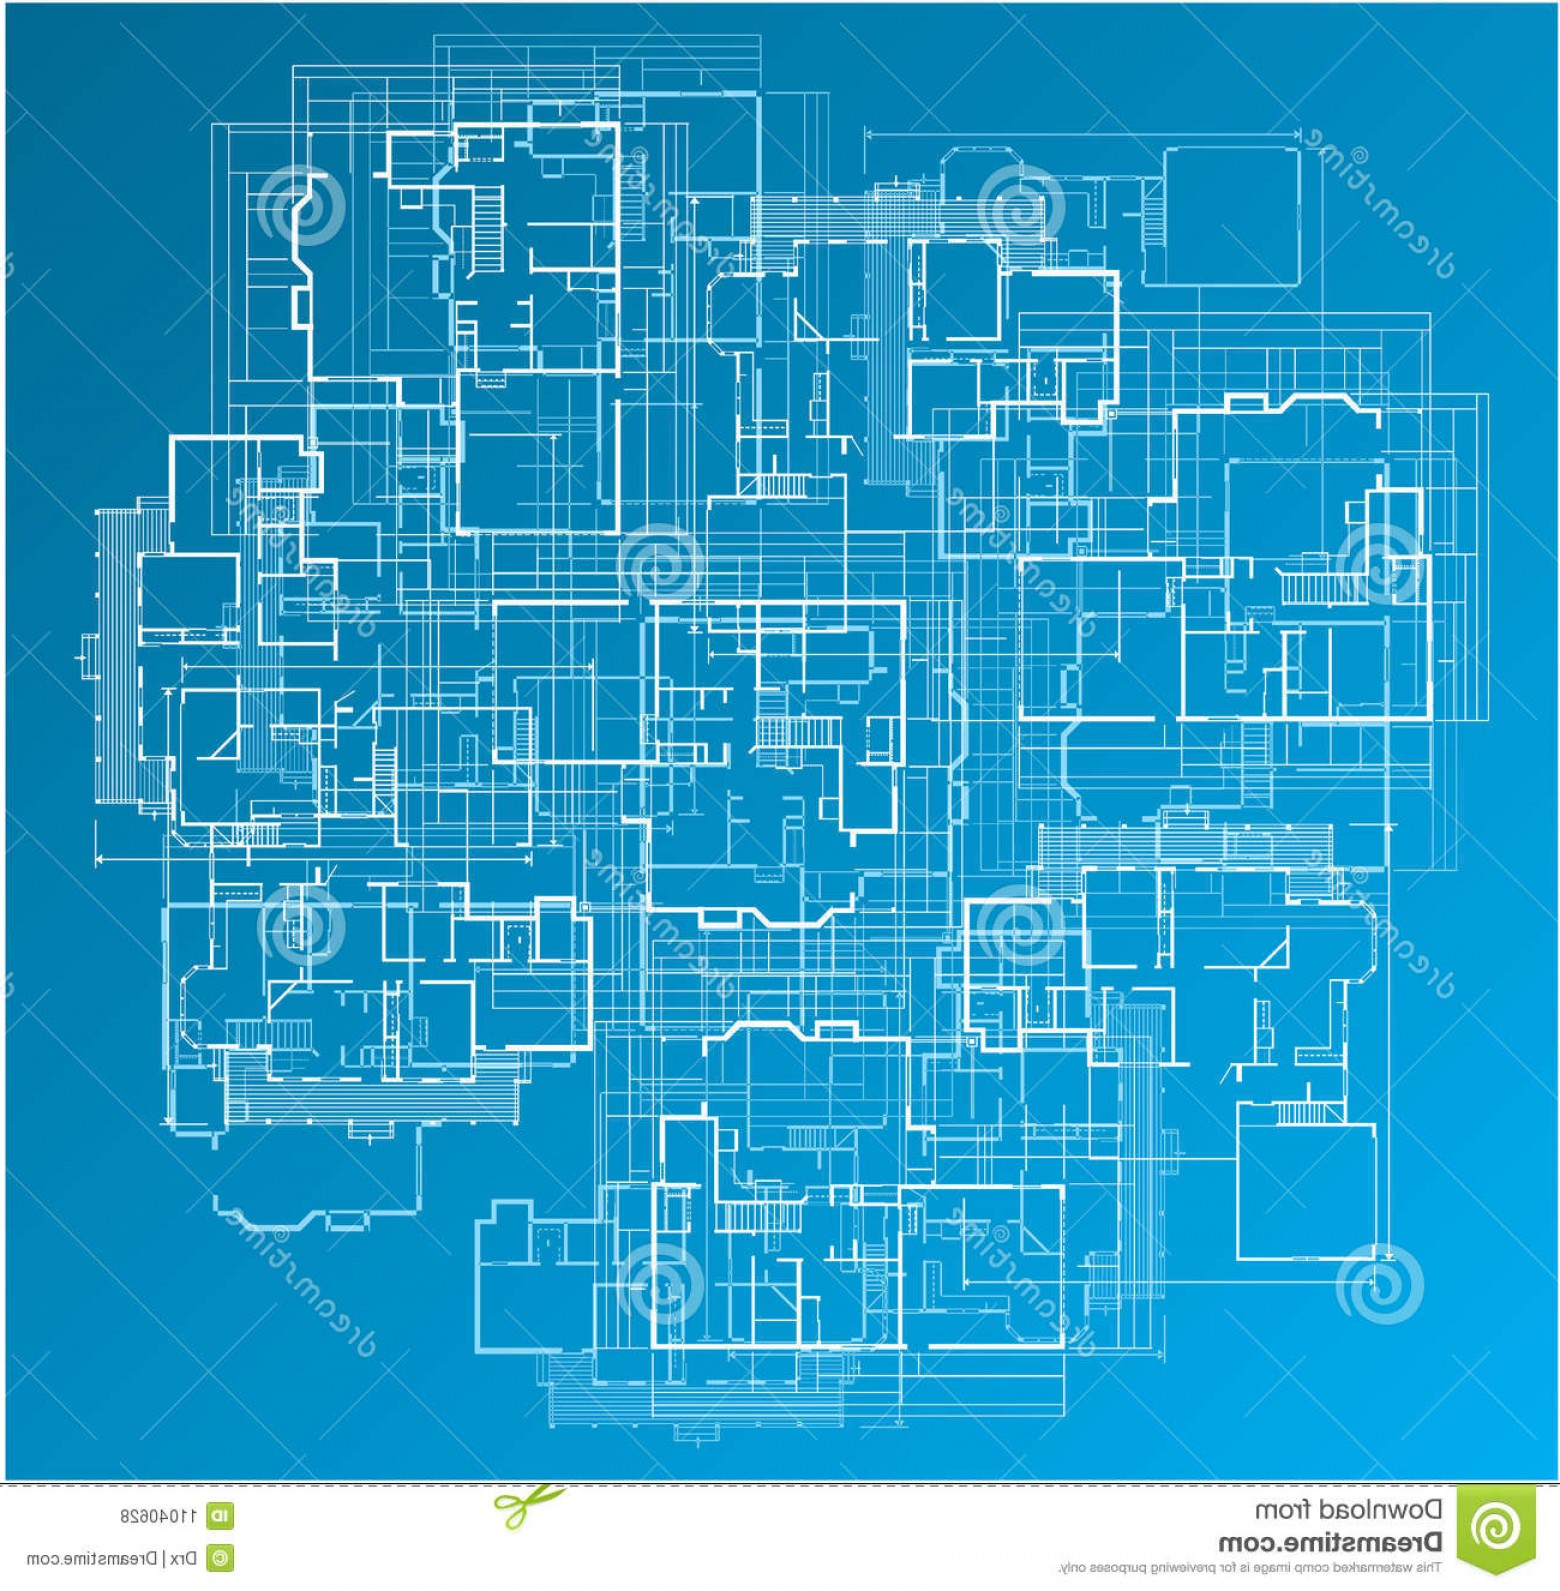 Residential Blueprint Vector Black: Royalty Free Stock Photos Building Blueprint Image